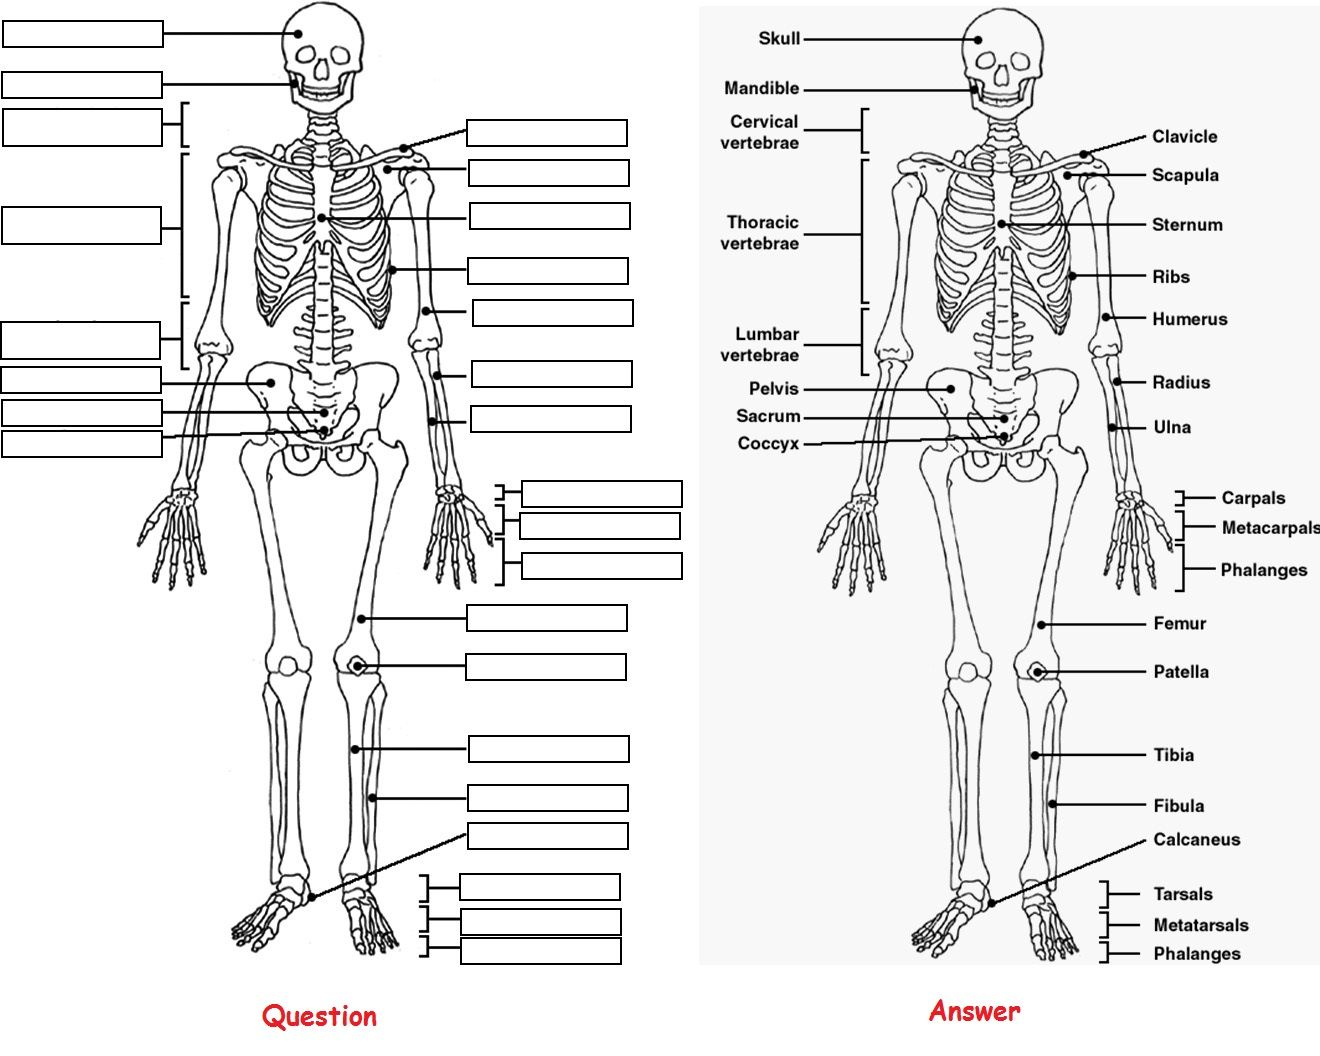 Skeleton Anatomy Coloring Pictures Label Question And